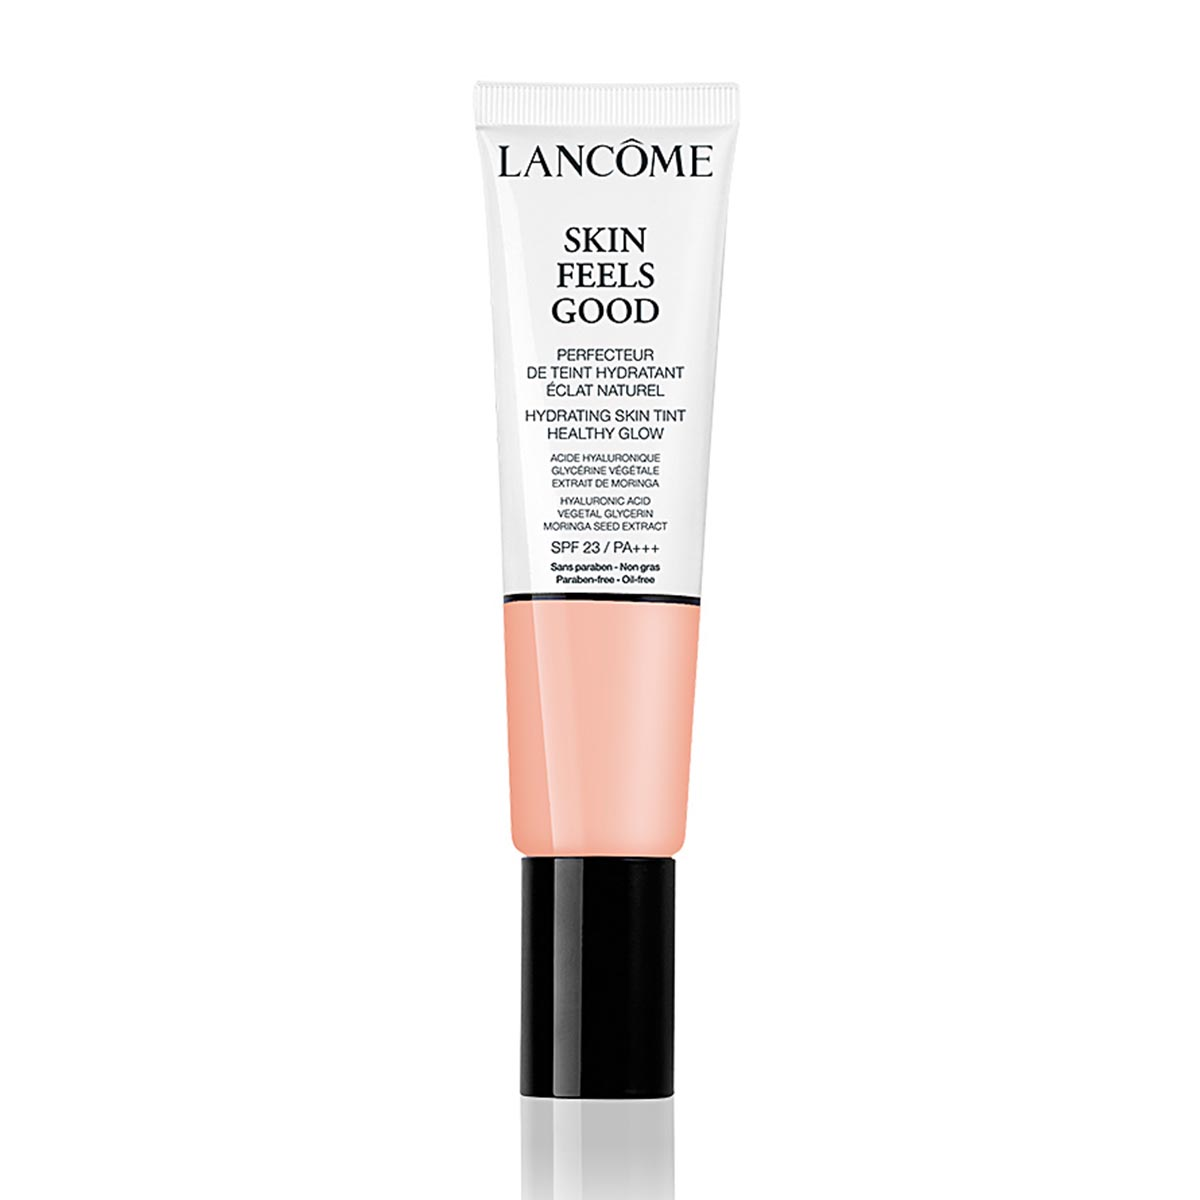 Lancome skin feels good hydrating base 02c natural blond